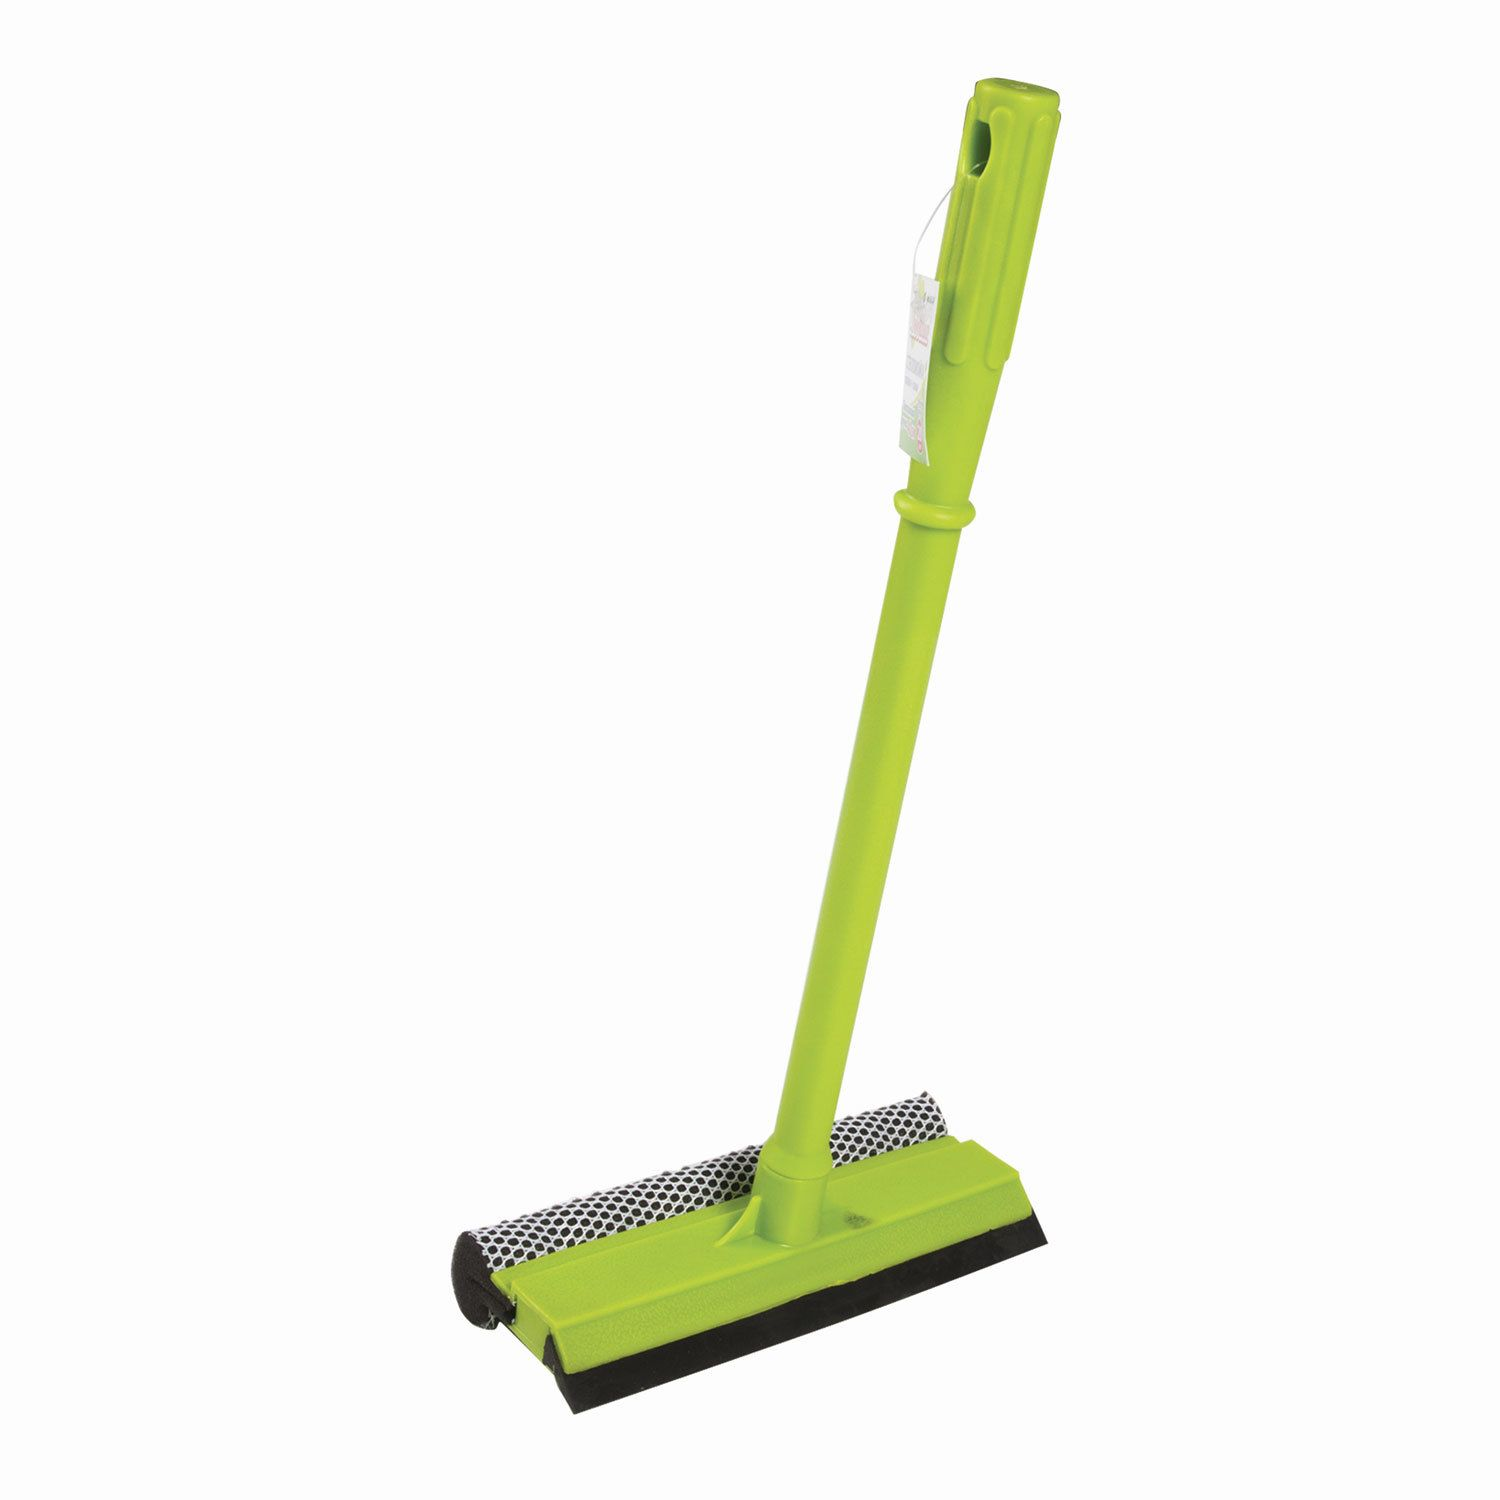 LYUBASHA / Glass washer plastic handle 40 cm, working part 20 cm (screed, sponge, handle)